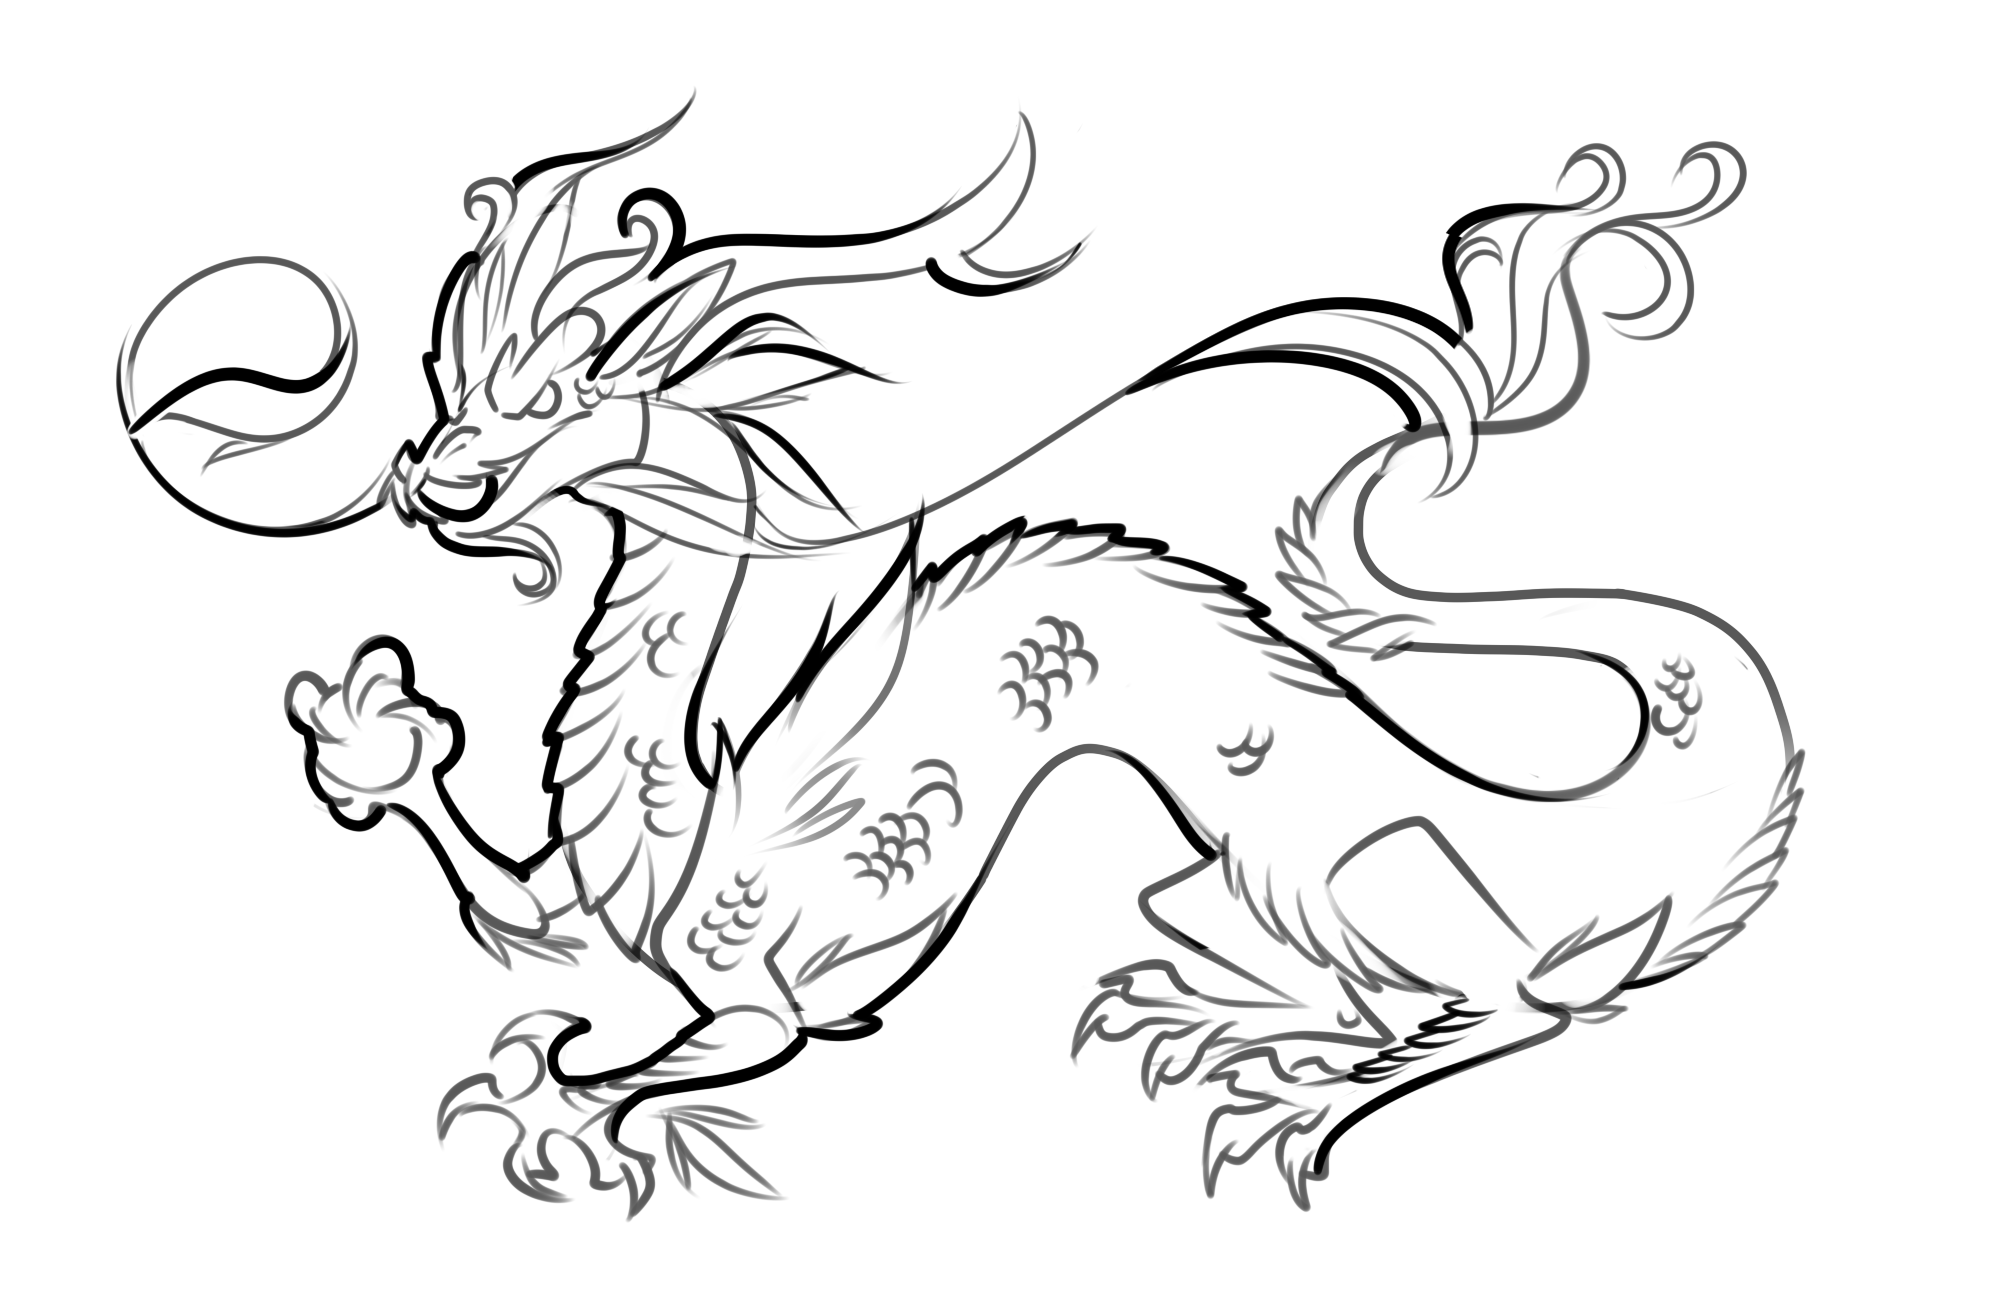 1990x1316 Quality Dragon Images To Color Printable Coloring Pages For Kids